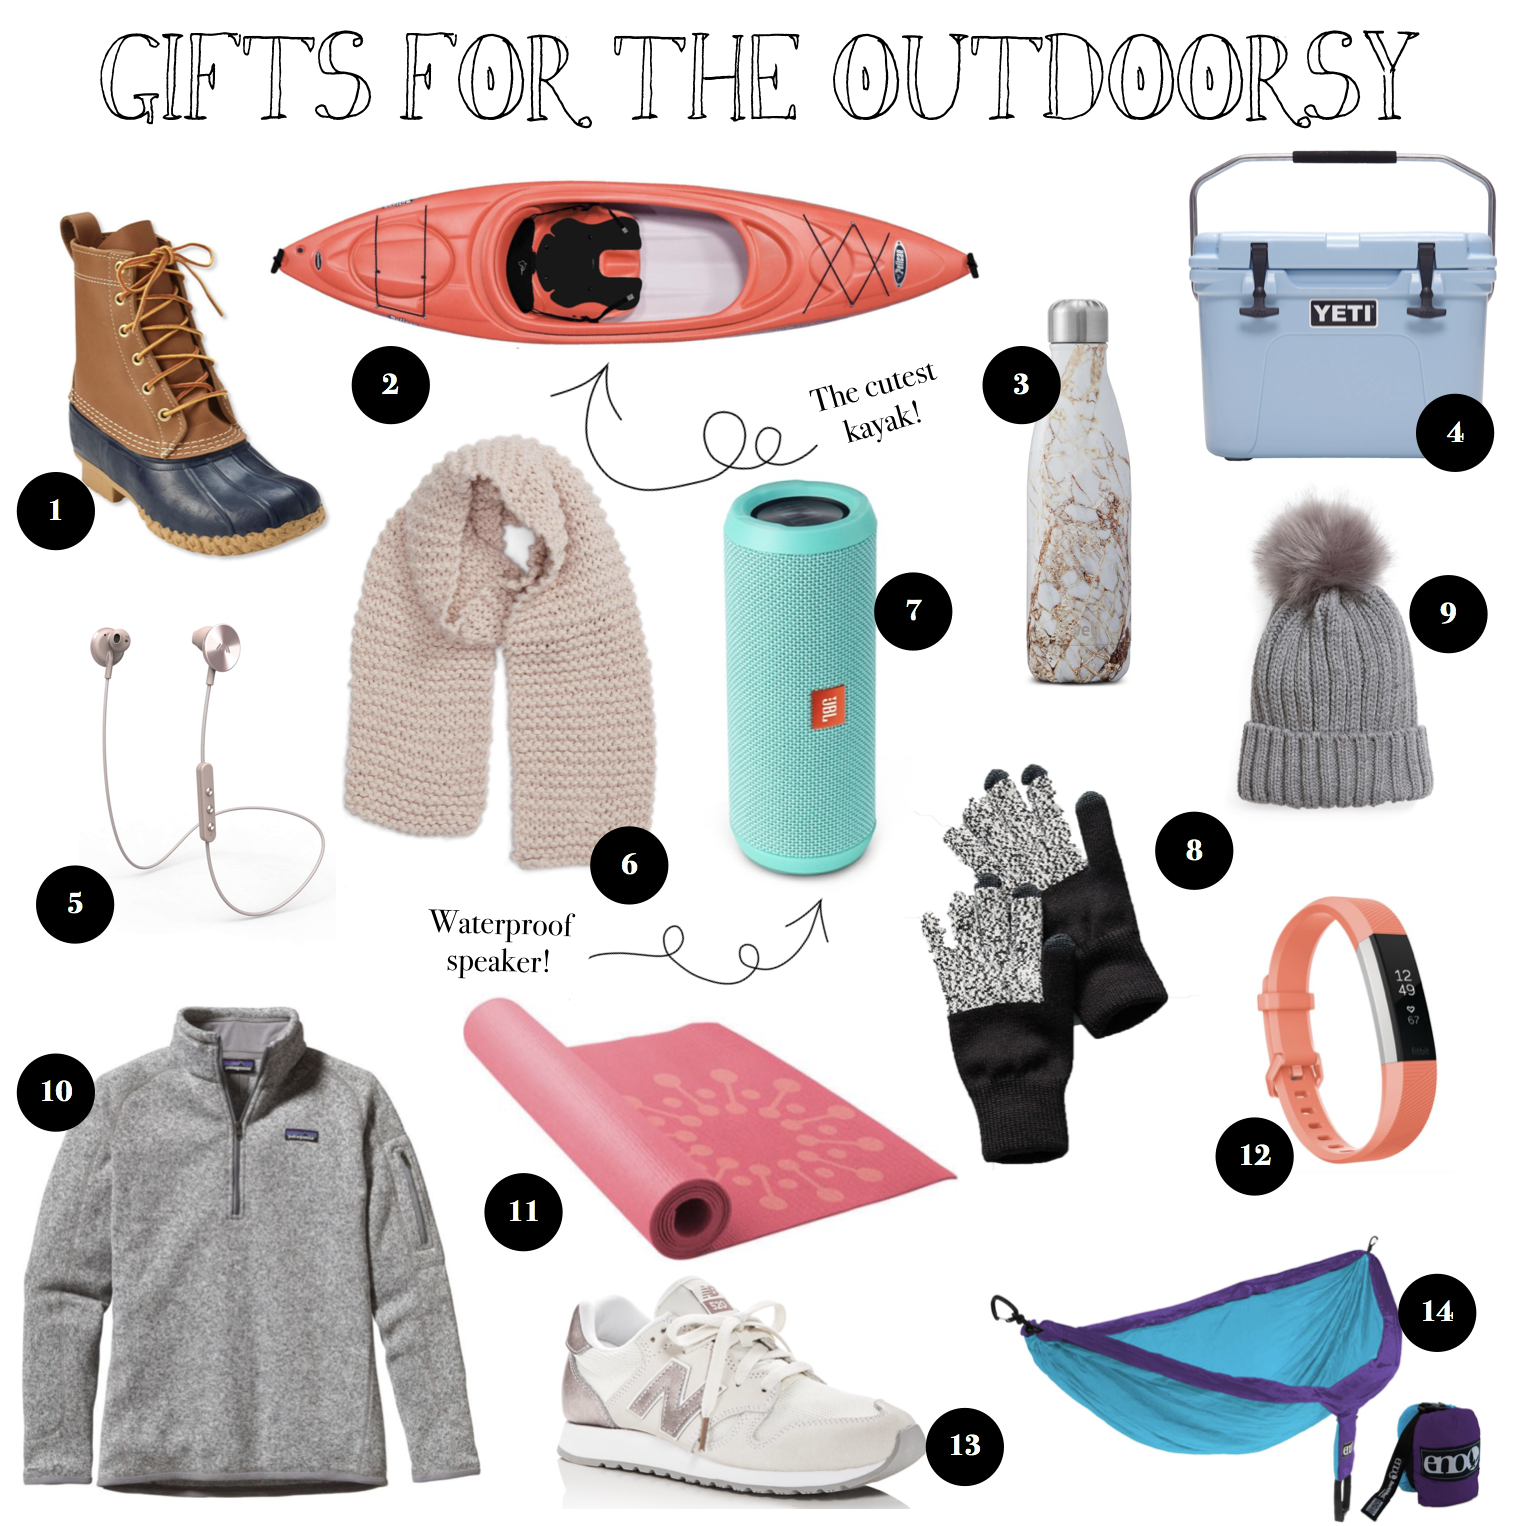 12 Gift Guides of 2017 Gift ideas for outdoorsy people - scarves, outdoor clothing! on fashion blog daily dose of charm by lauren lindmark